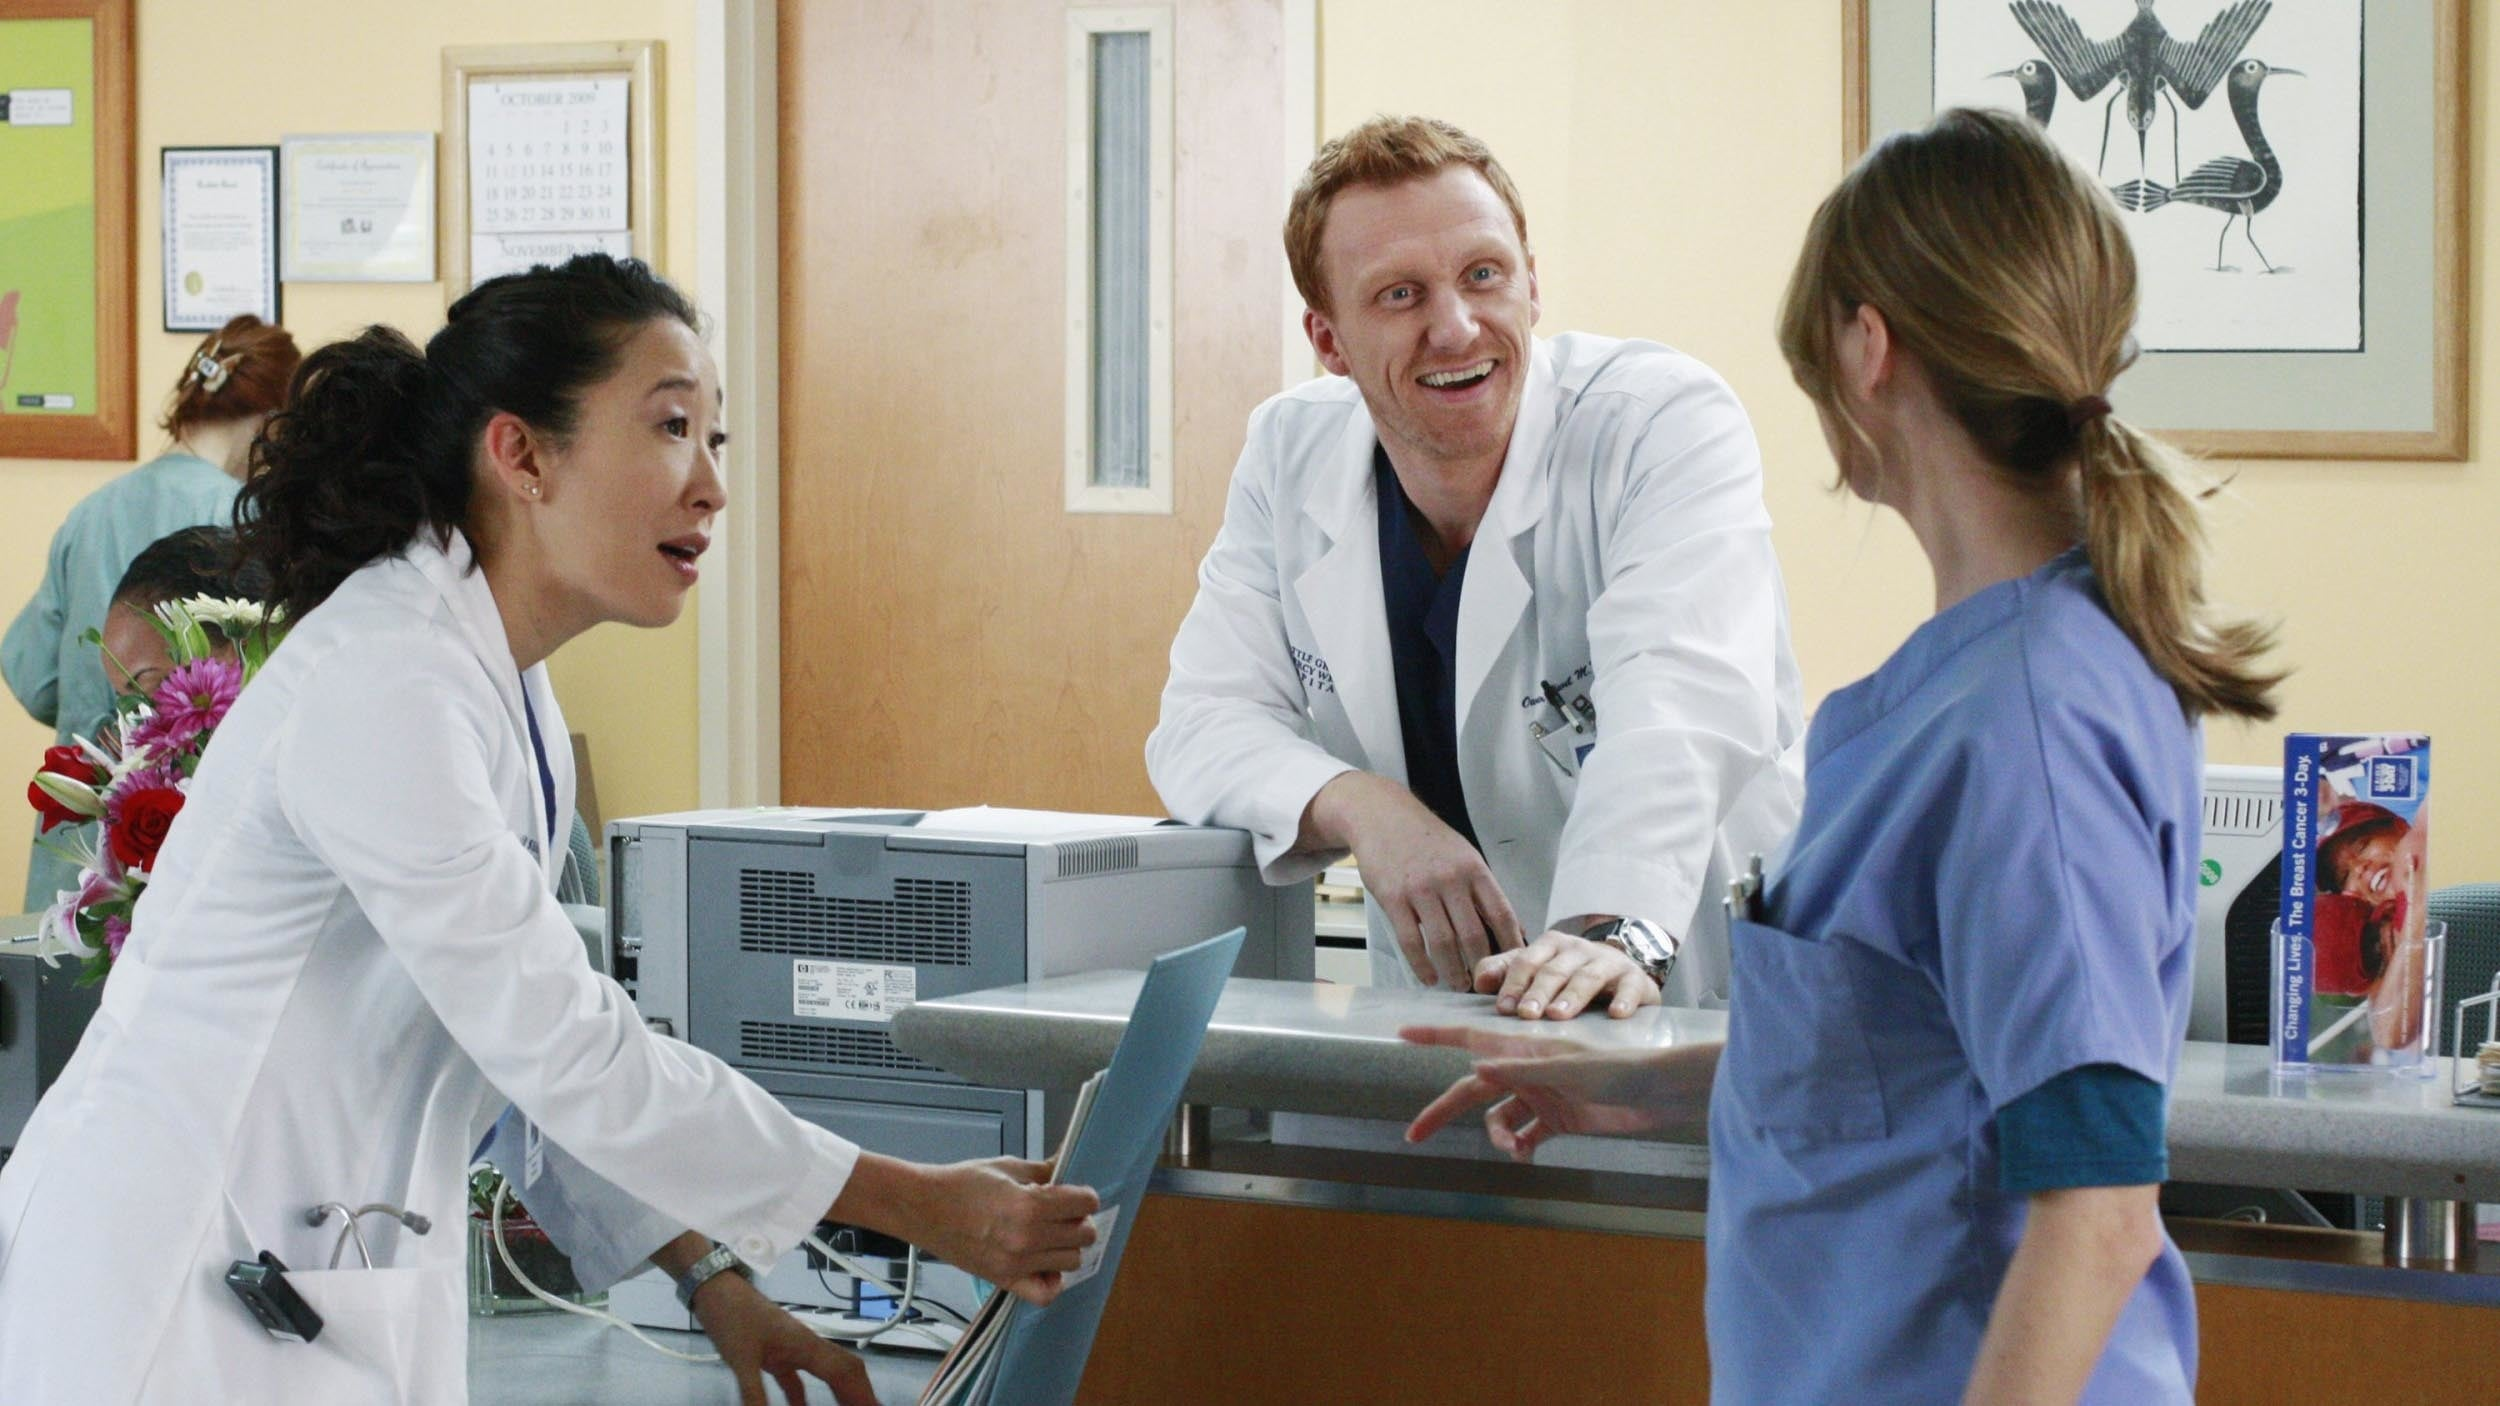 Grey Anatomy Season 11 Episode 12 Watch Online